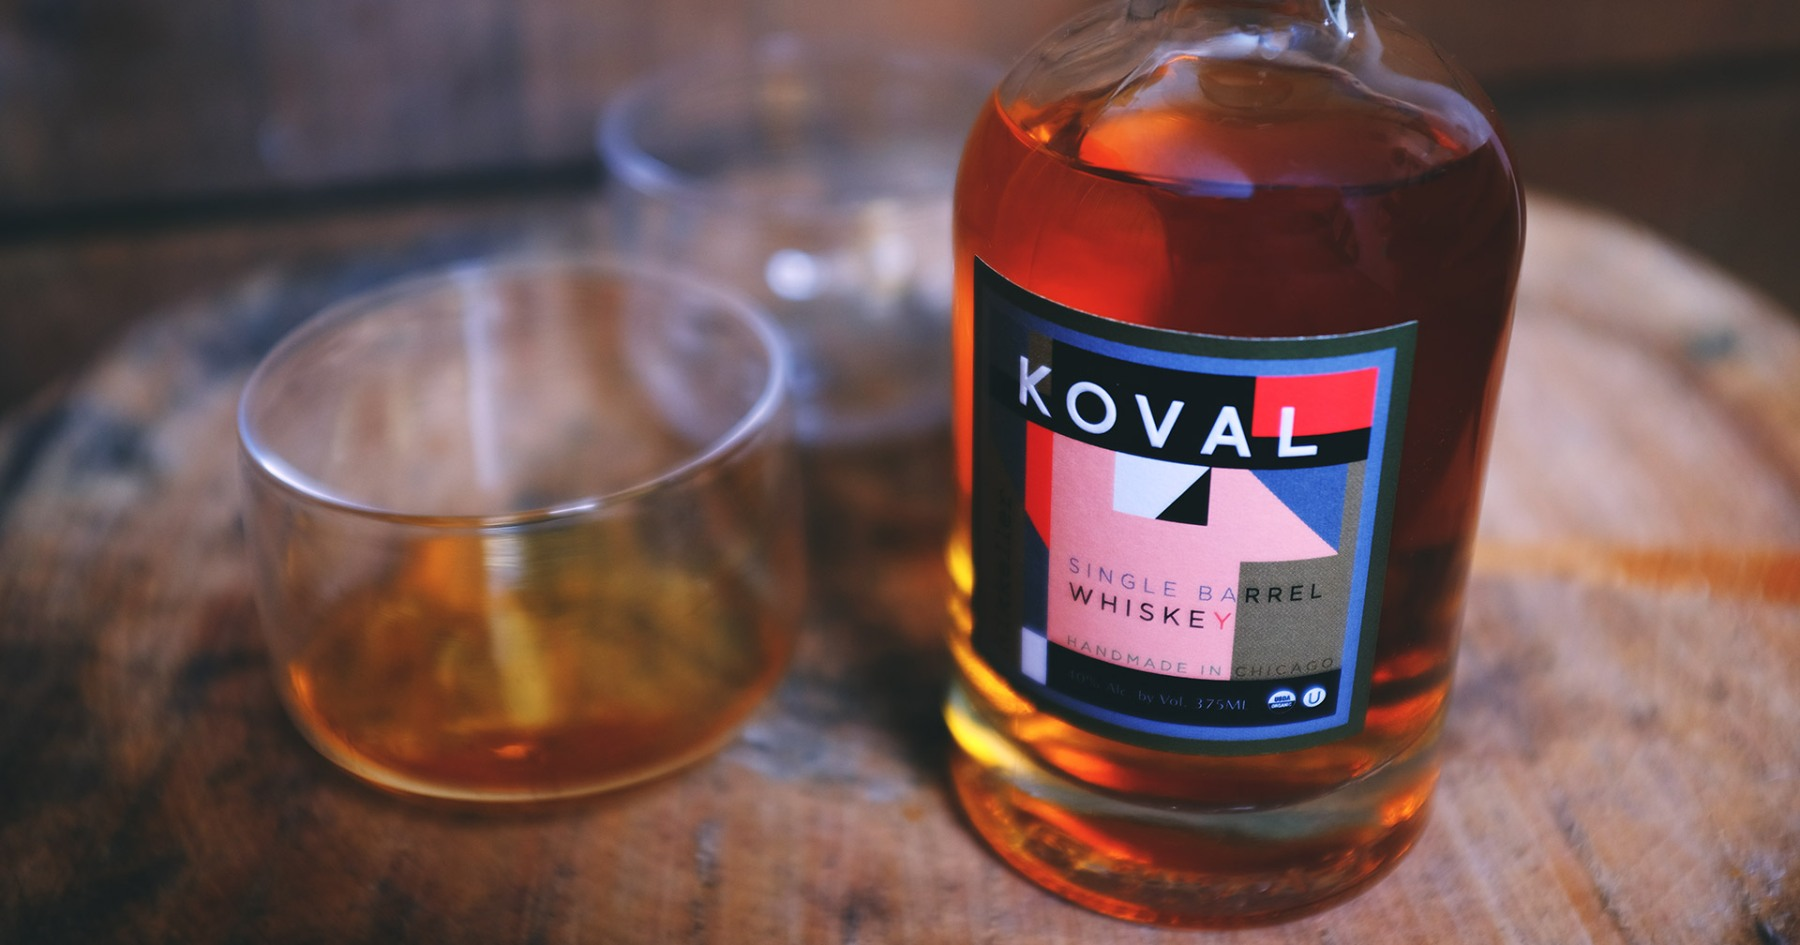 The Next Frontier of Craft Spirits and Craft Beer